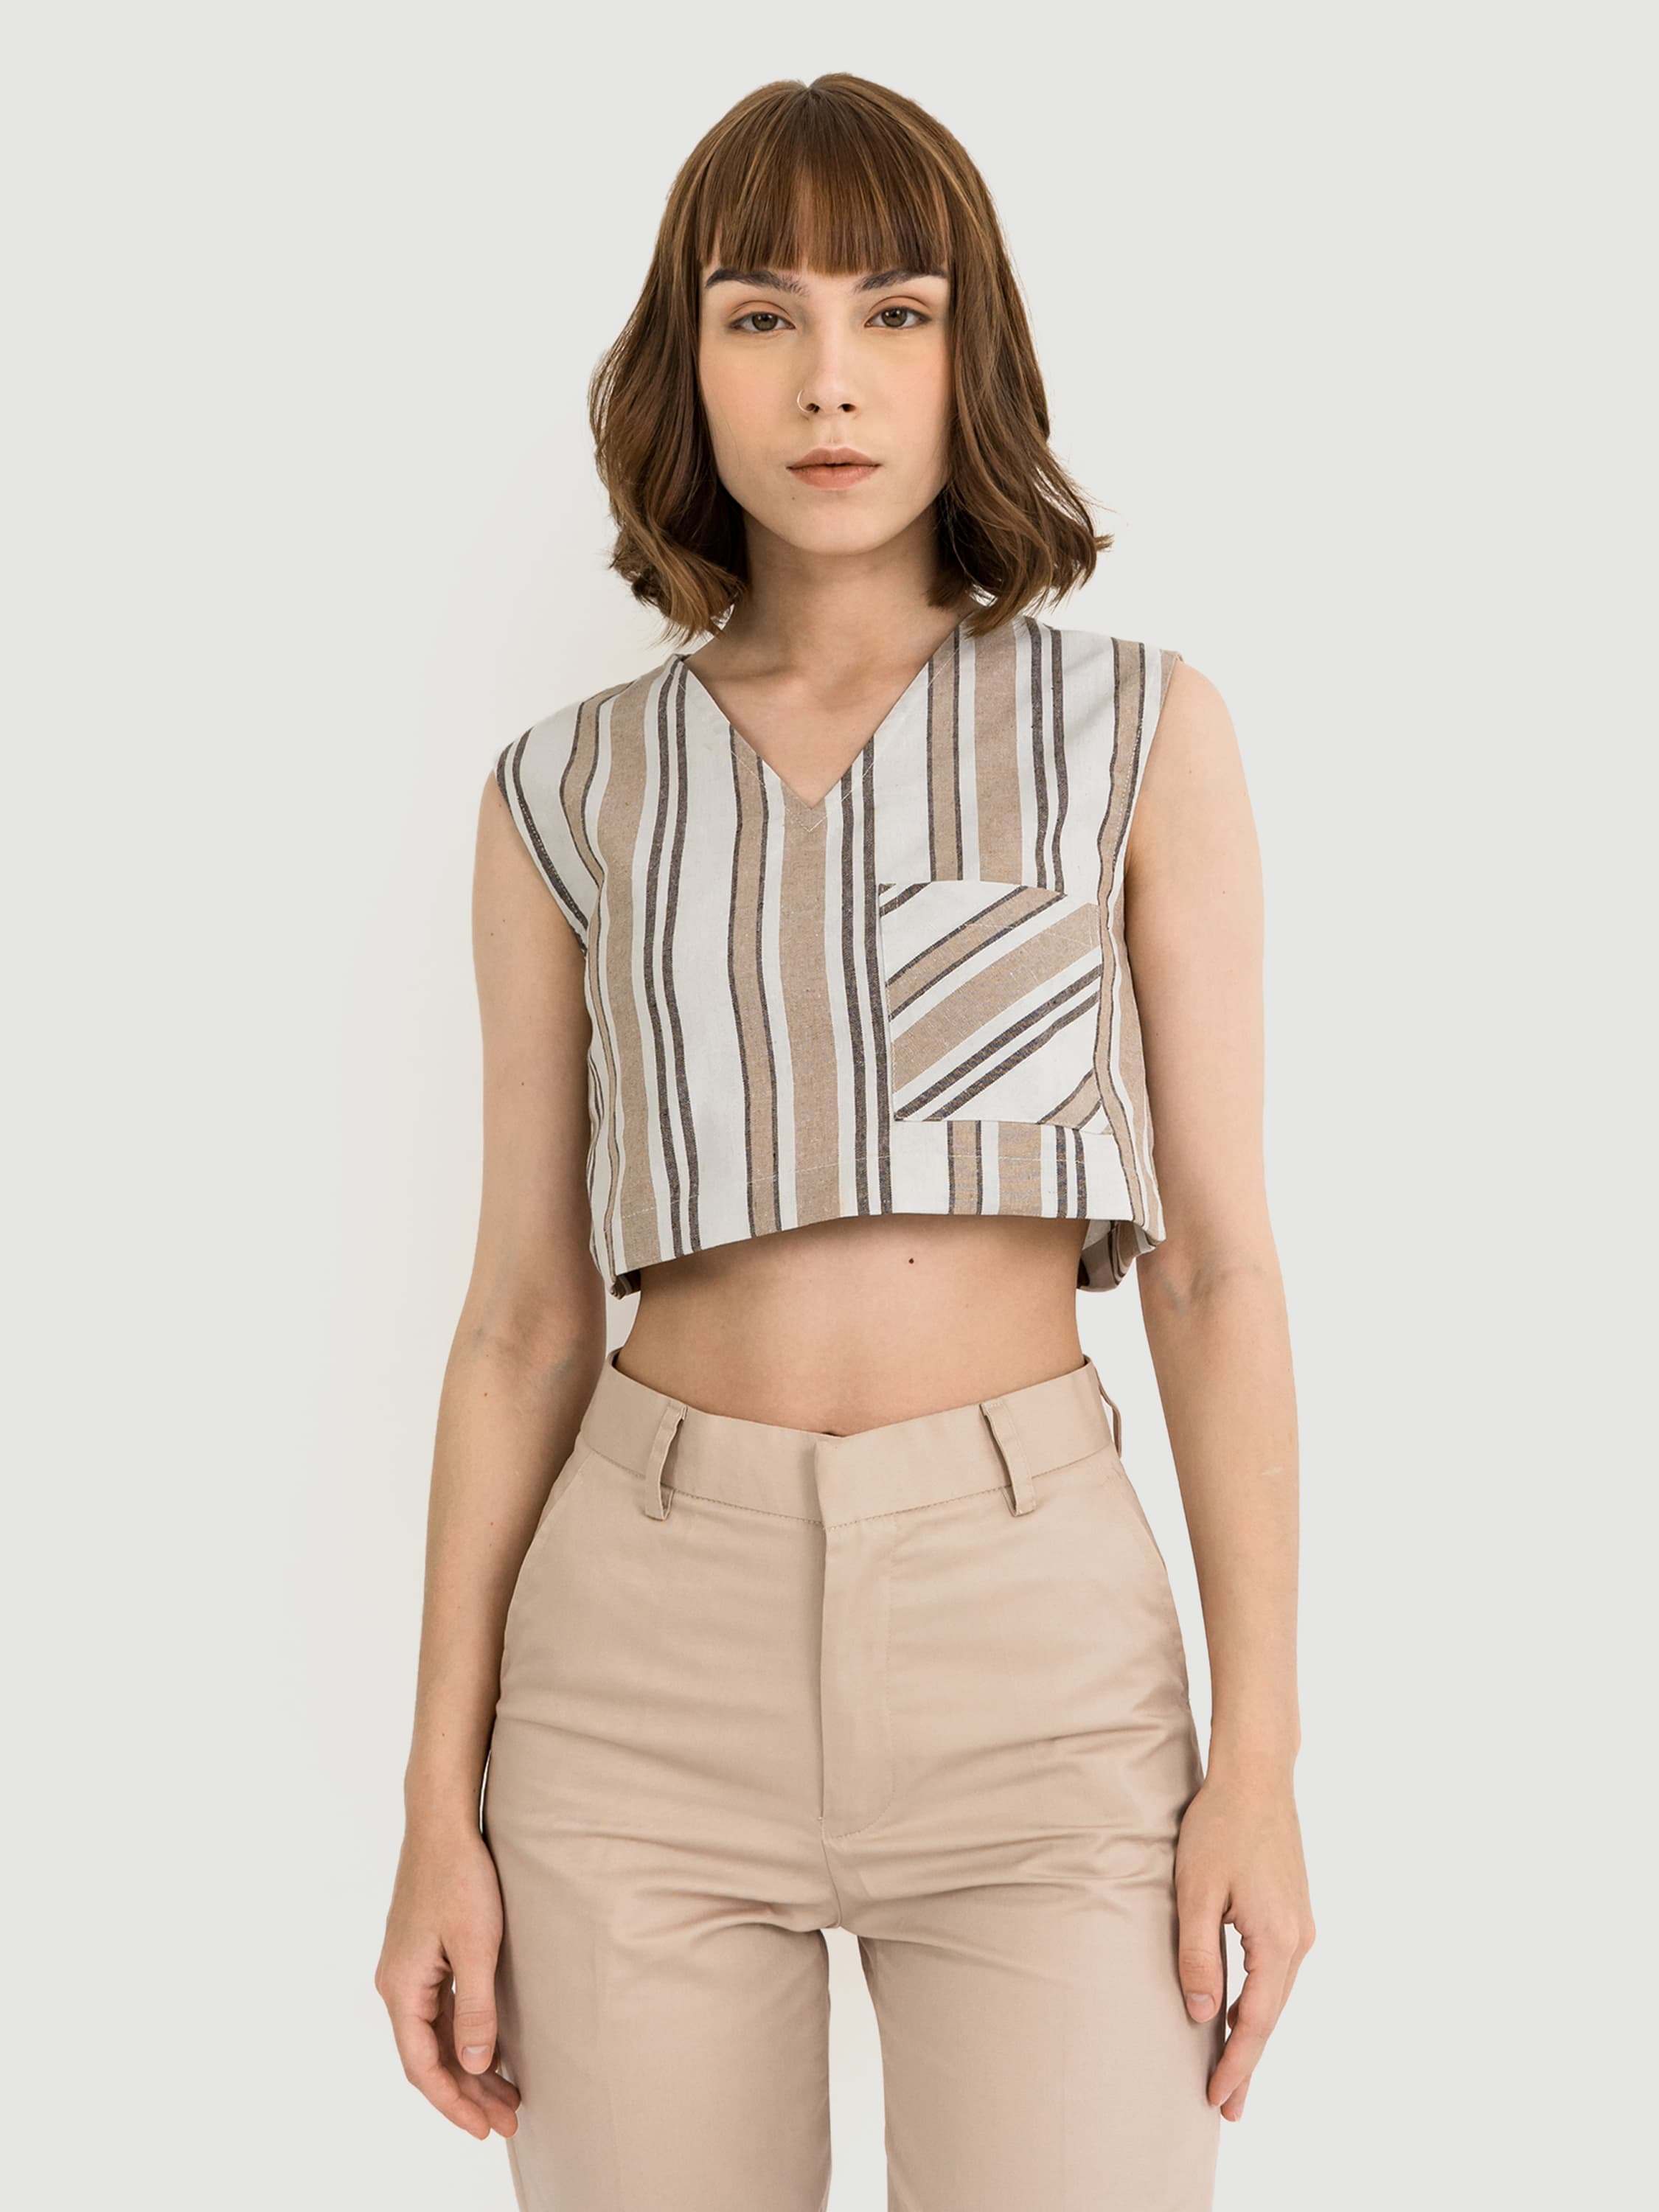 V-neck Stripes Crop Top